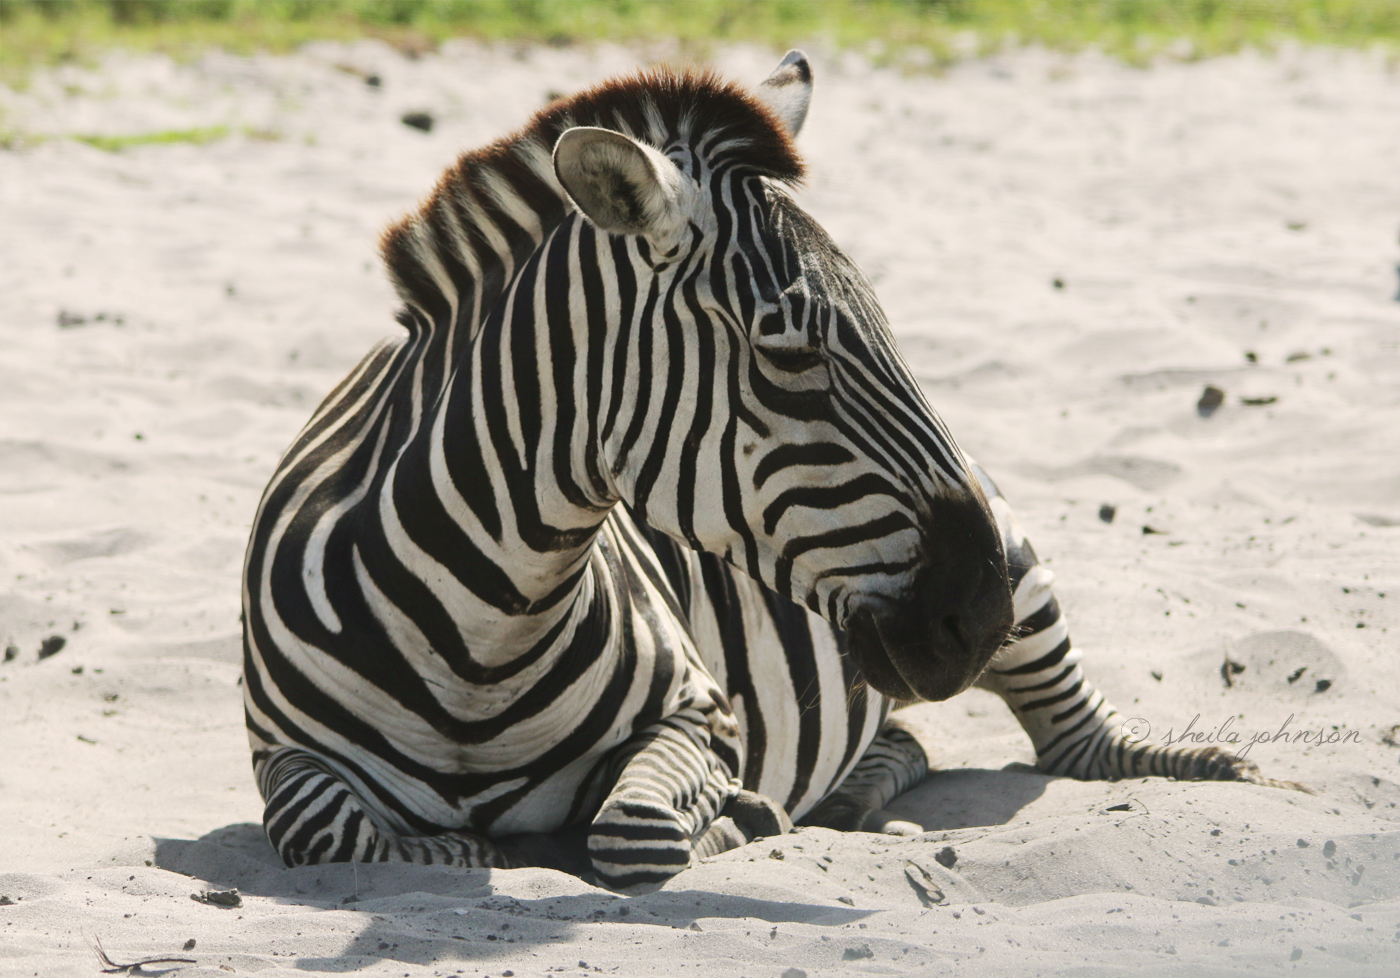 This Common Or Plains Zebra Seems Content To Soak Up The Sun And Enjoy The Lazy Days Of Summer At Lion Country Safari. Some Experts Believe That Zebra Stripes Help Keep Them Safe, As Predators Are Unable To Tell If There Are 5 Or 50 Zebra In A Group.